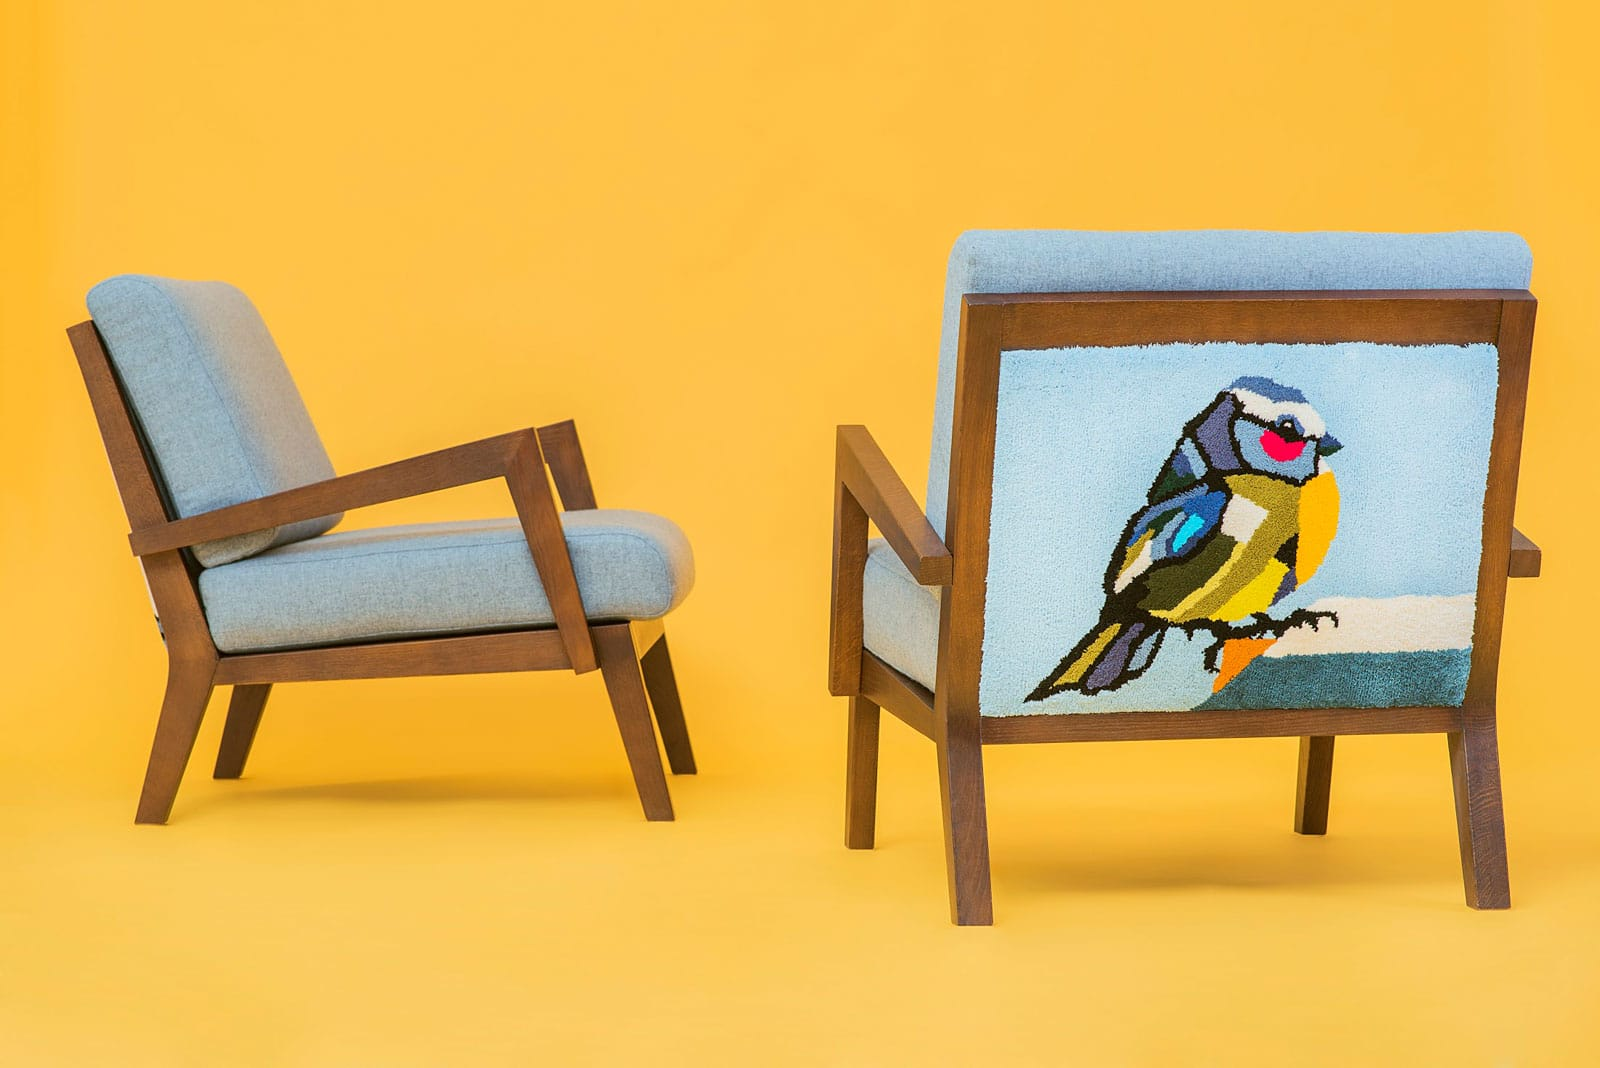 Set of handmade armchairs created by artist Agne Kisonaite